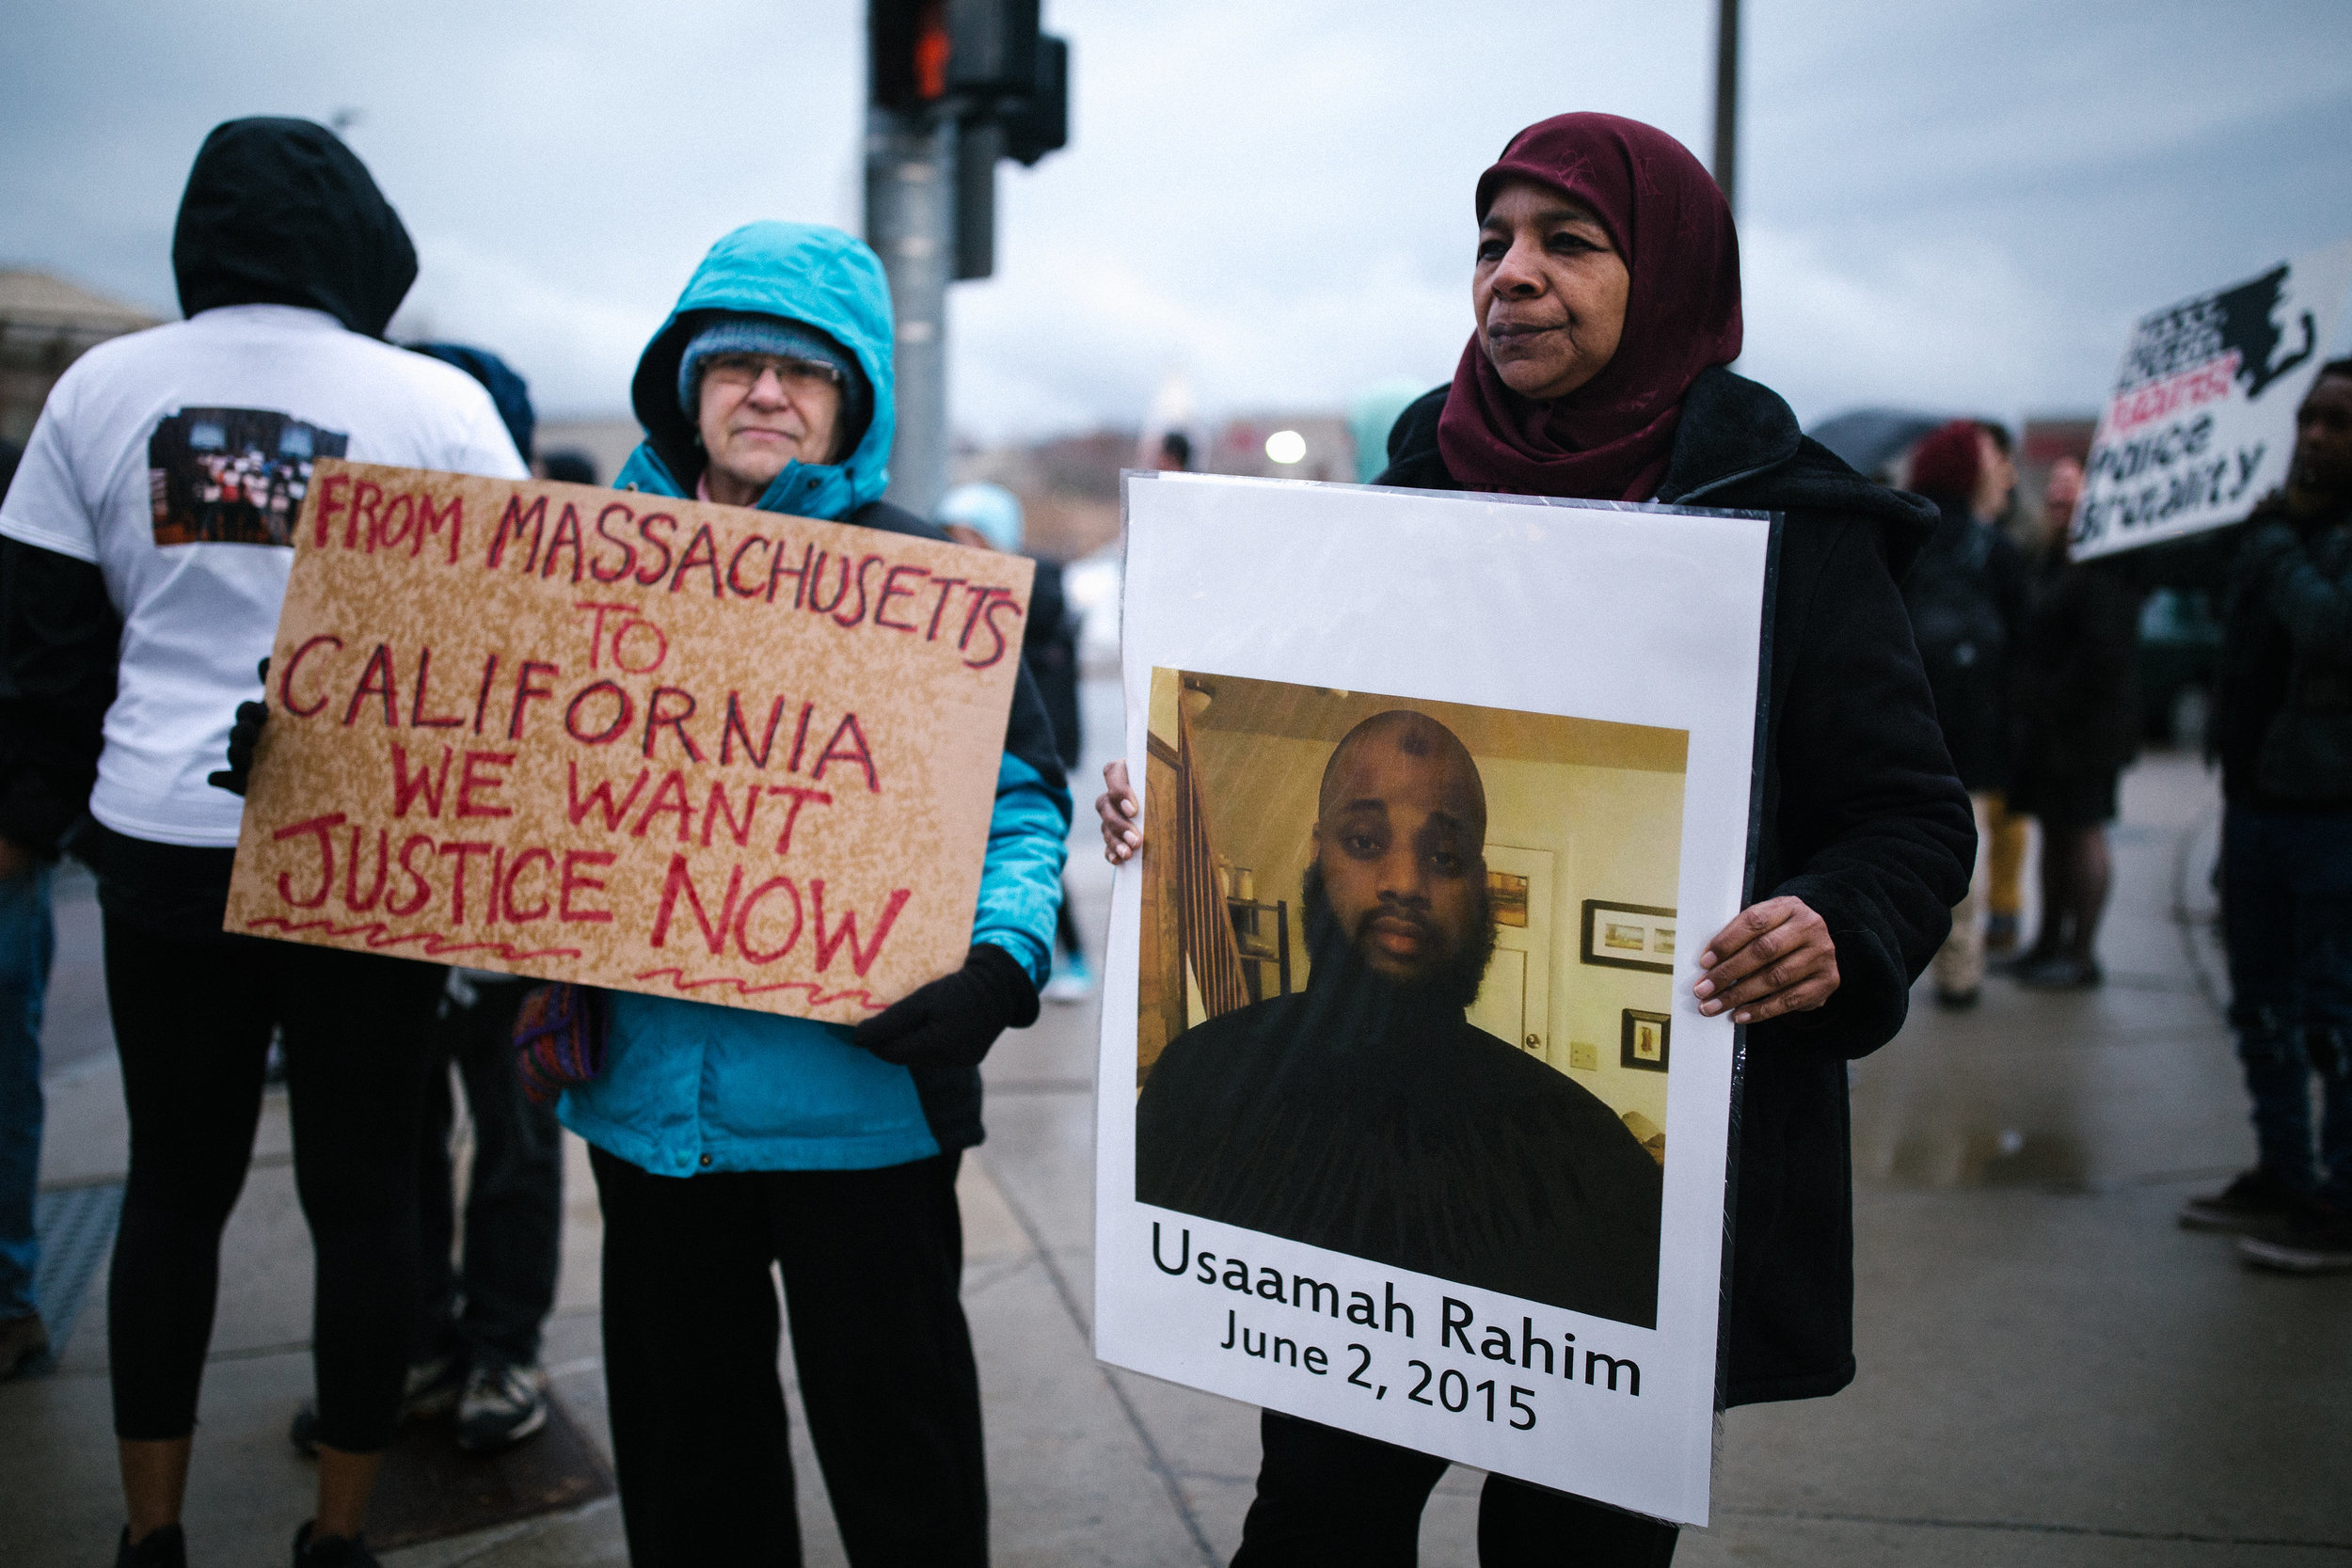 Photo description: Rahima Rahim, pictured on the right, holds a sign with the picture of her son Usaamah Rahim and the date June 2, 2015, when he was killed by Boston police and FBI in Roslindale. To the left, an unidentified protester holds a sign that says 'From Massachusetts to California We Want Justice Now.' (Credit: Emily Goldhammer)